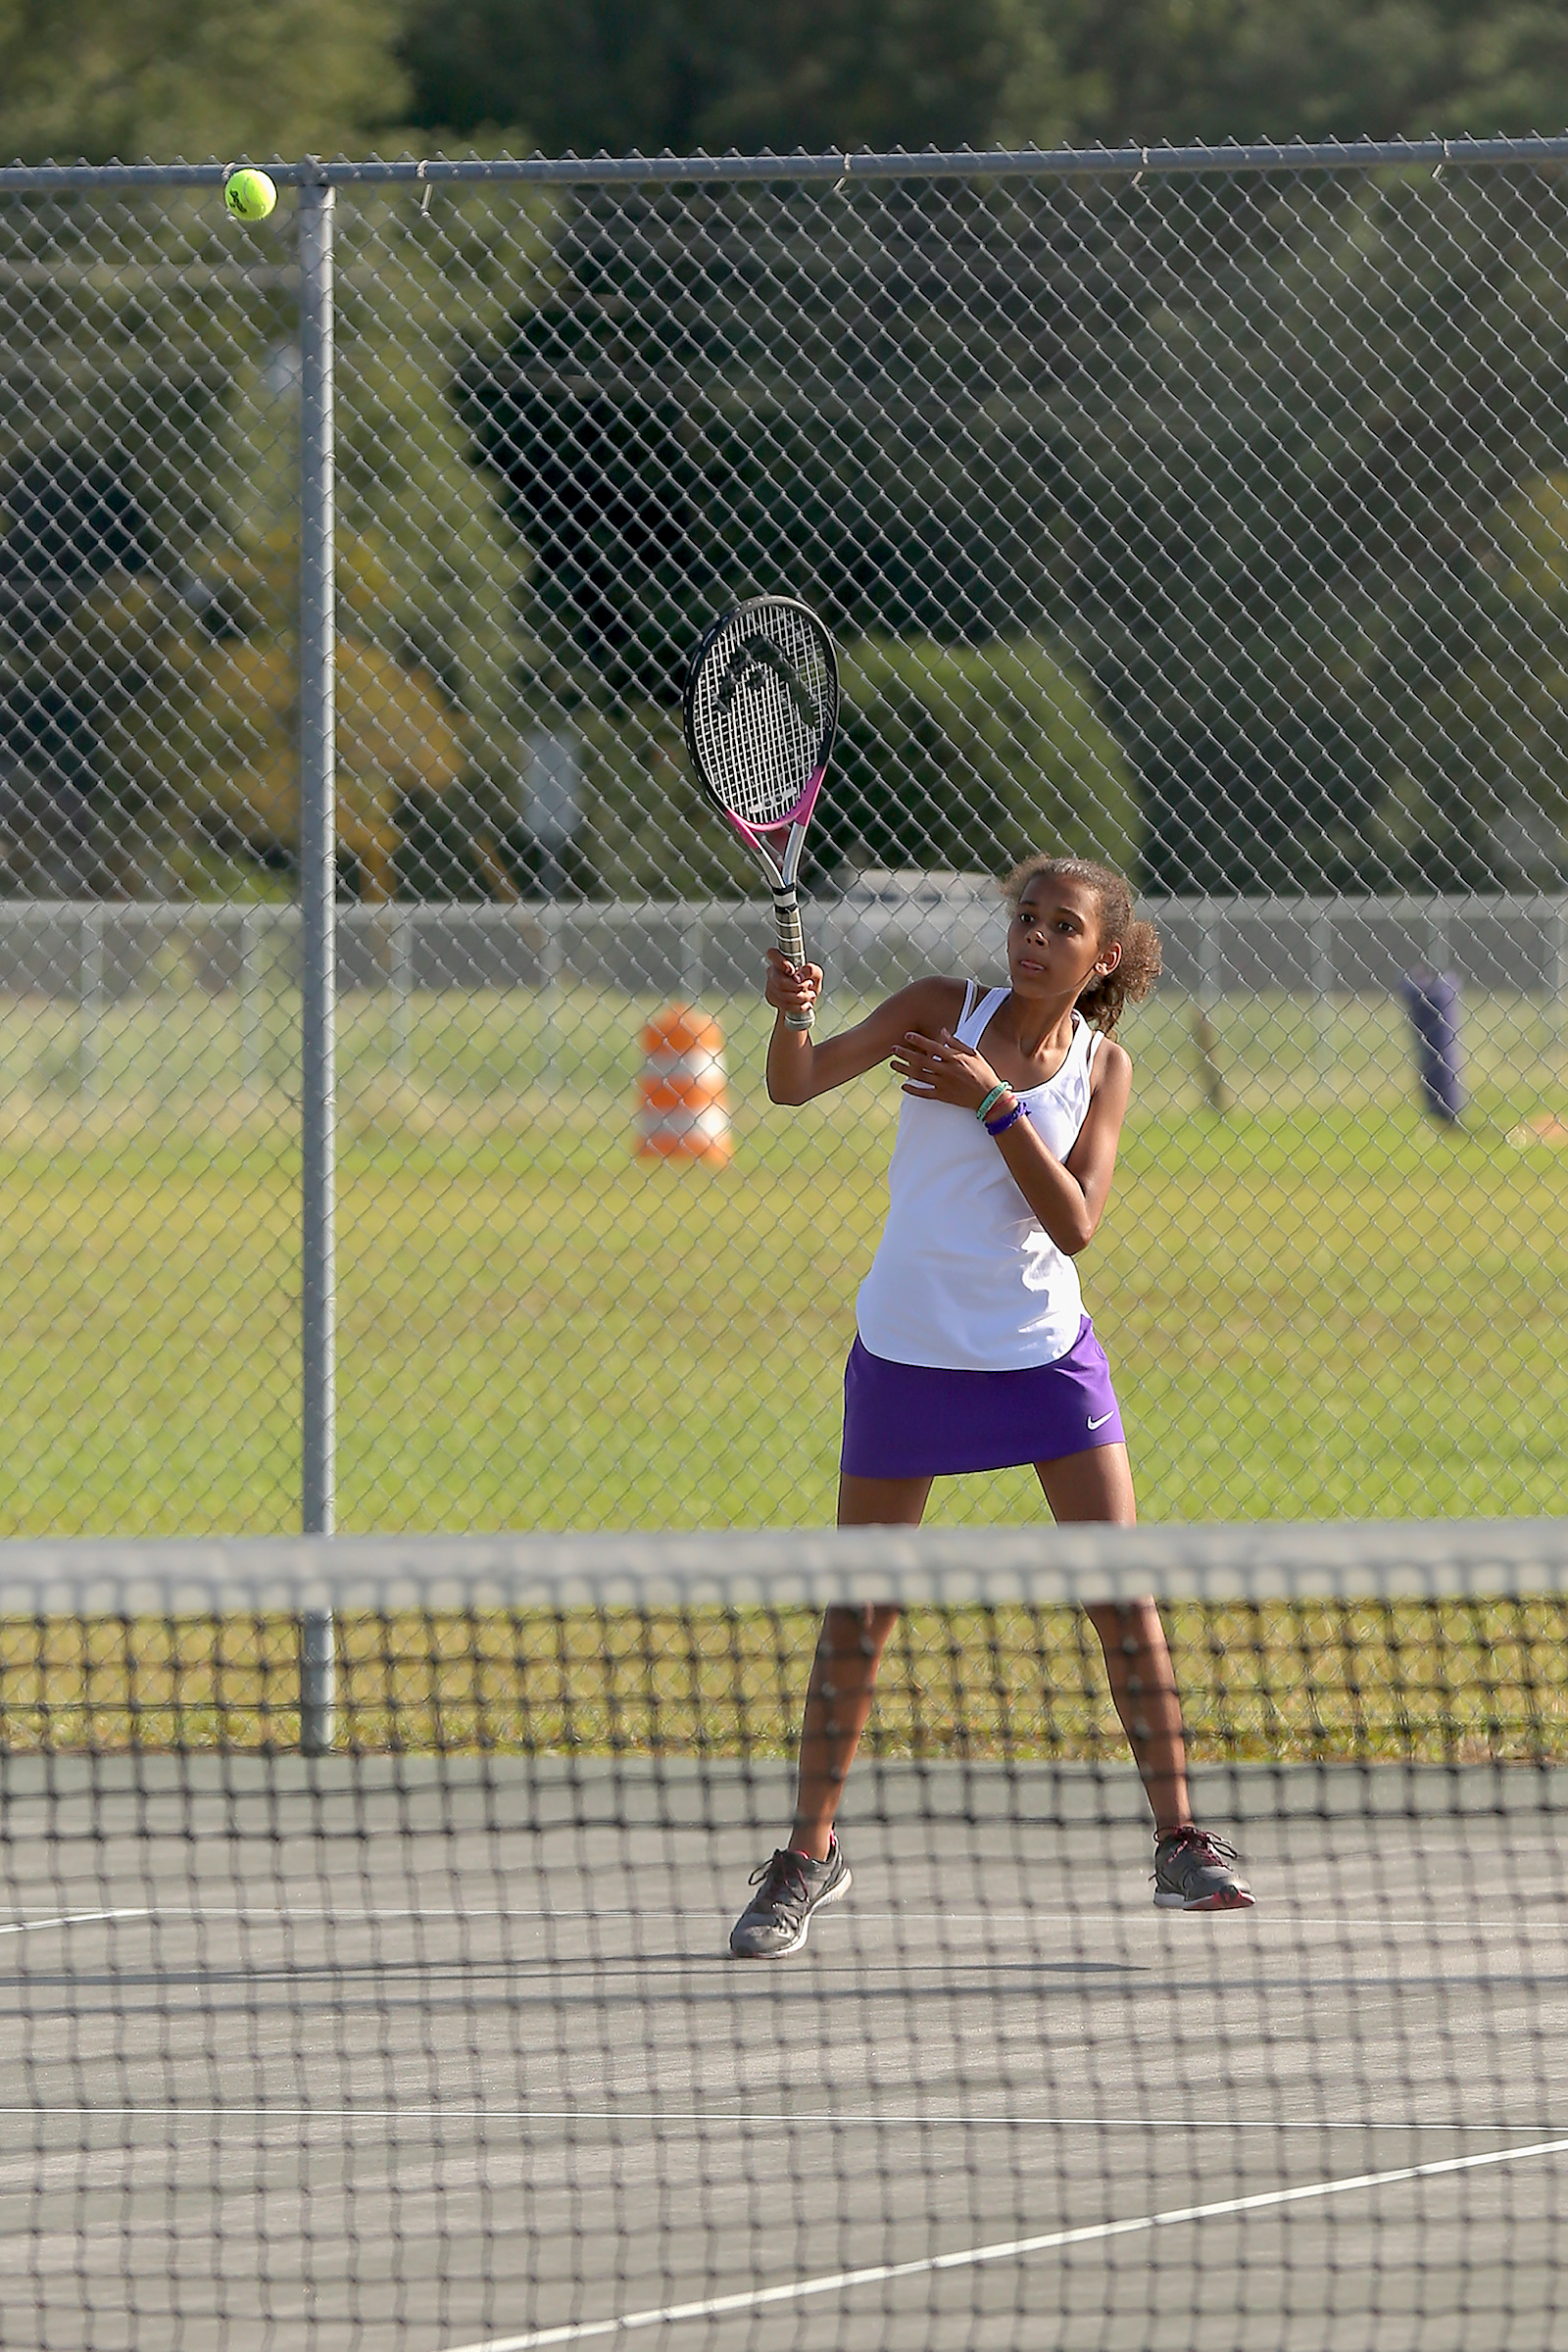 East Columbus v West Bladen 2017 Tennis 2